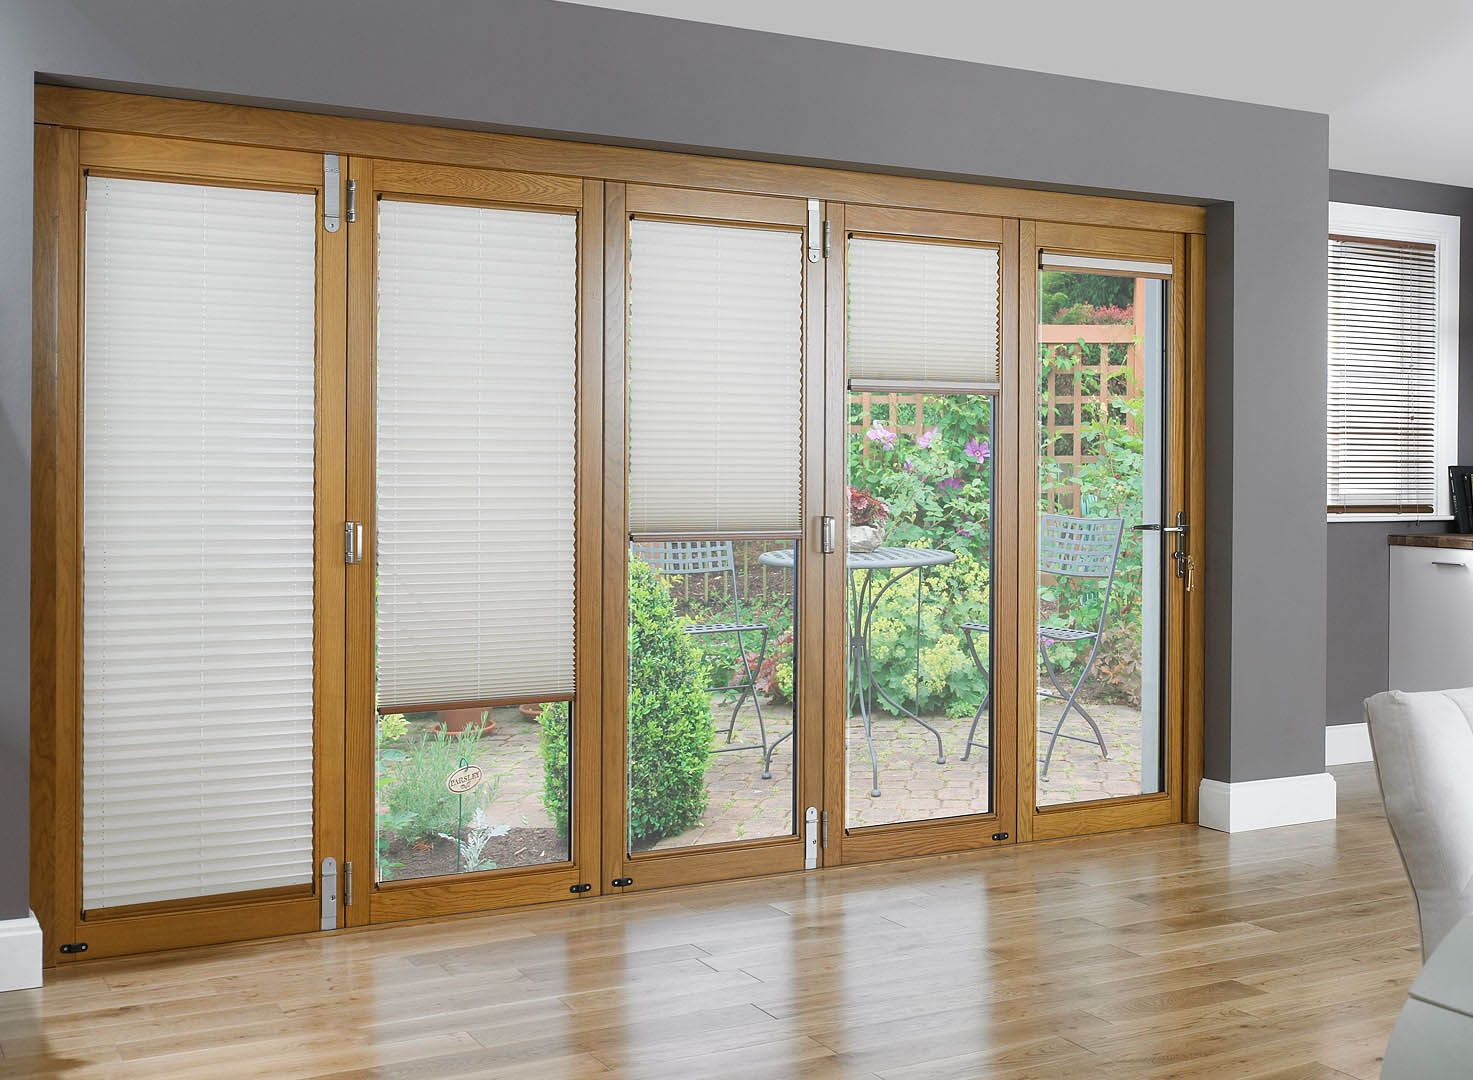 15 Must-see Sliding Door Blinds Pins | Patio door blinds, Large windows and  Panel blinds